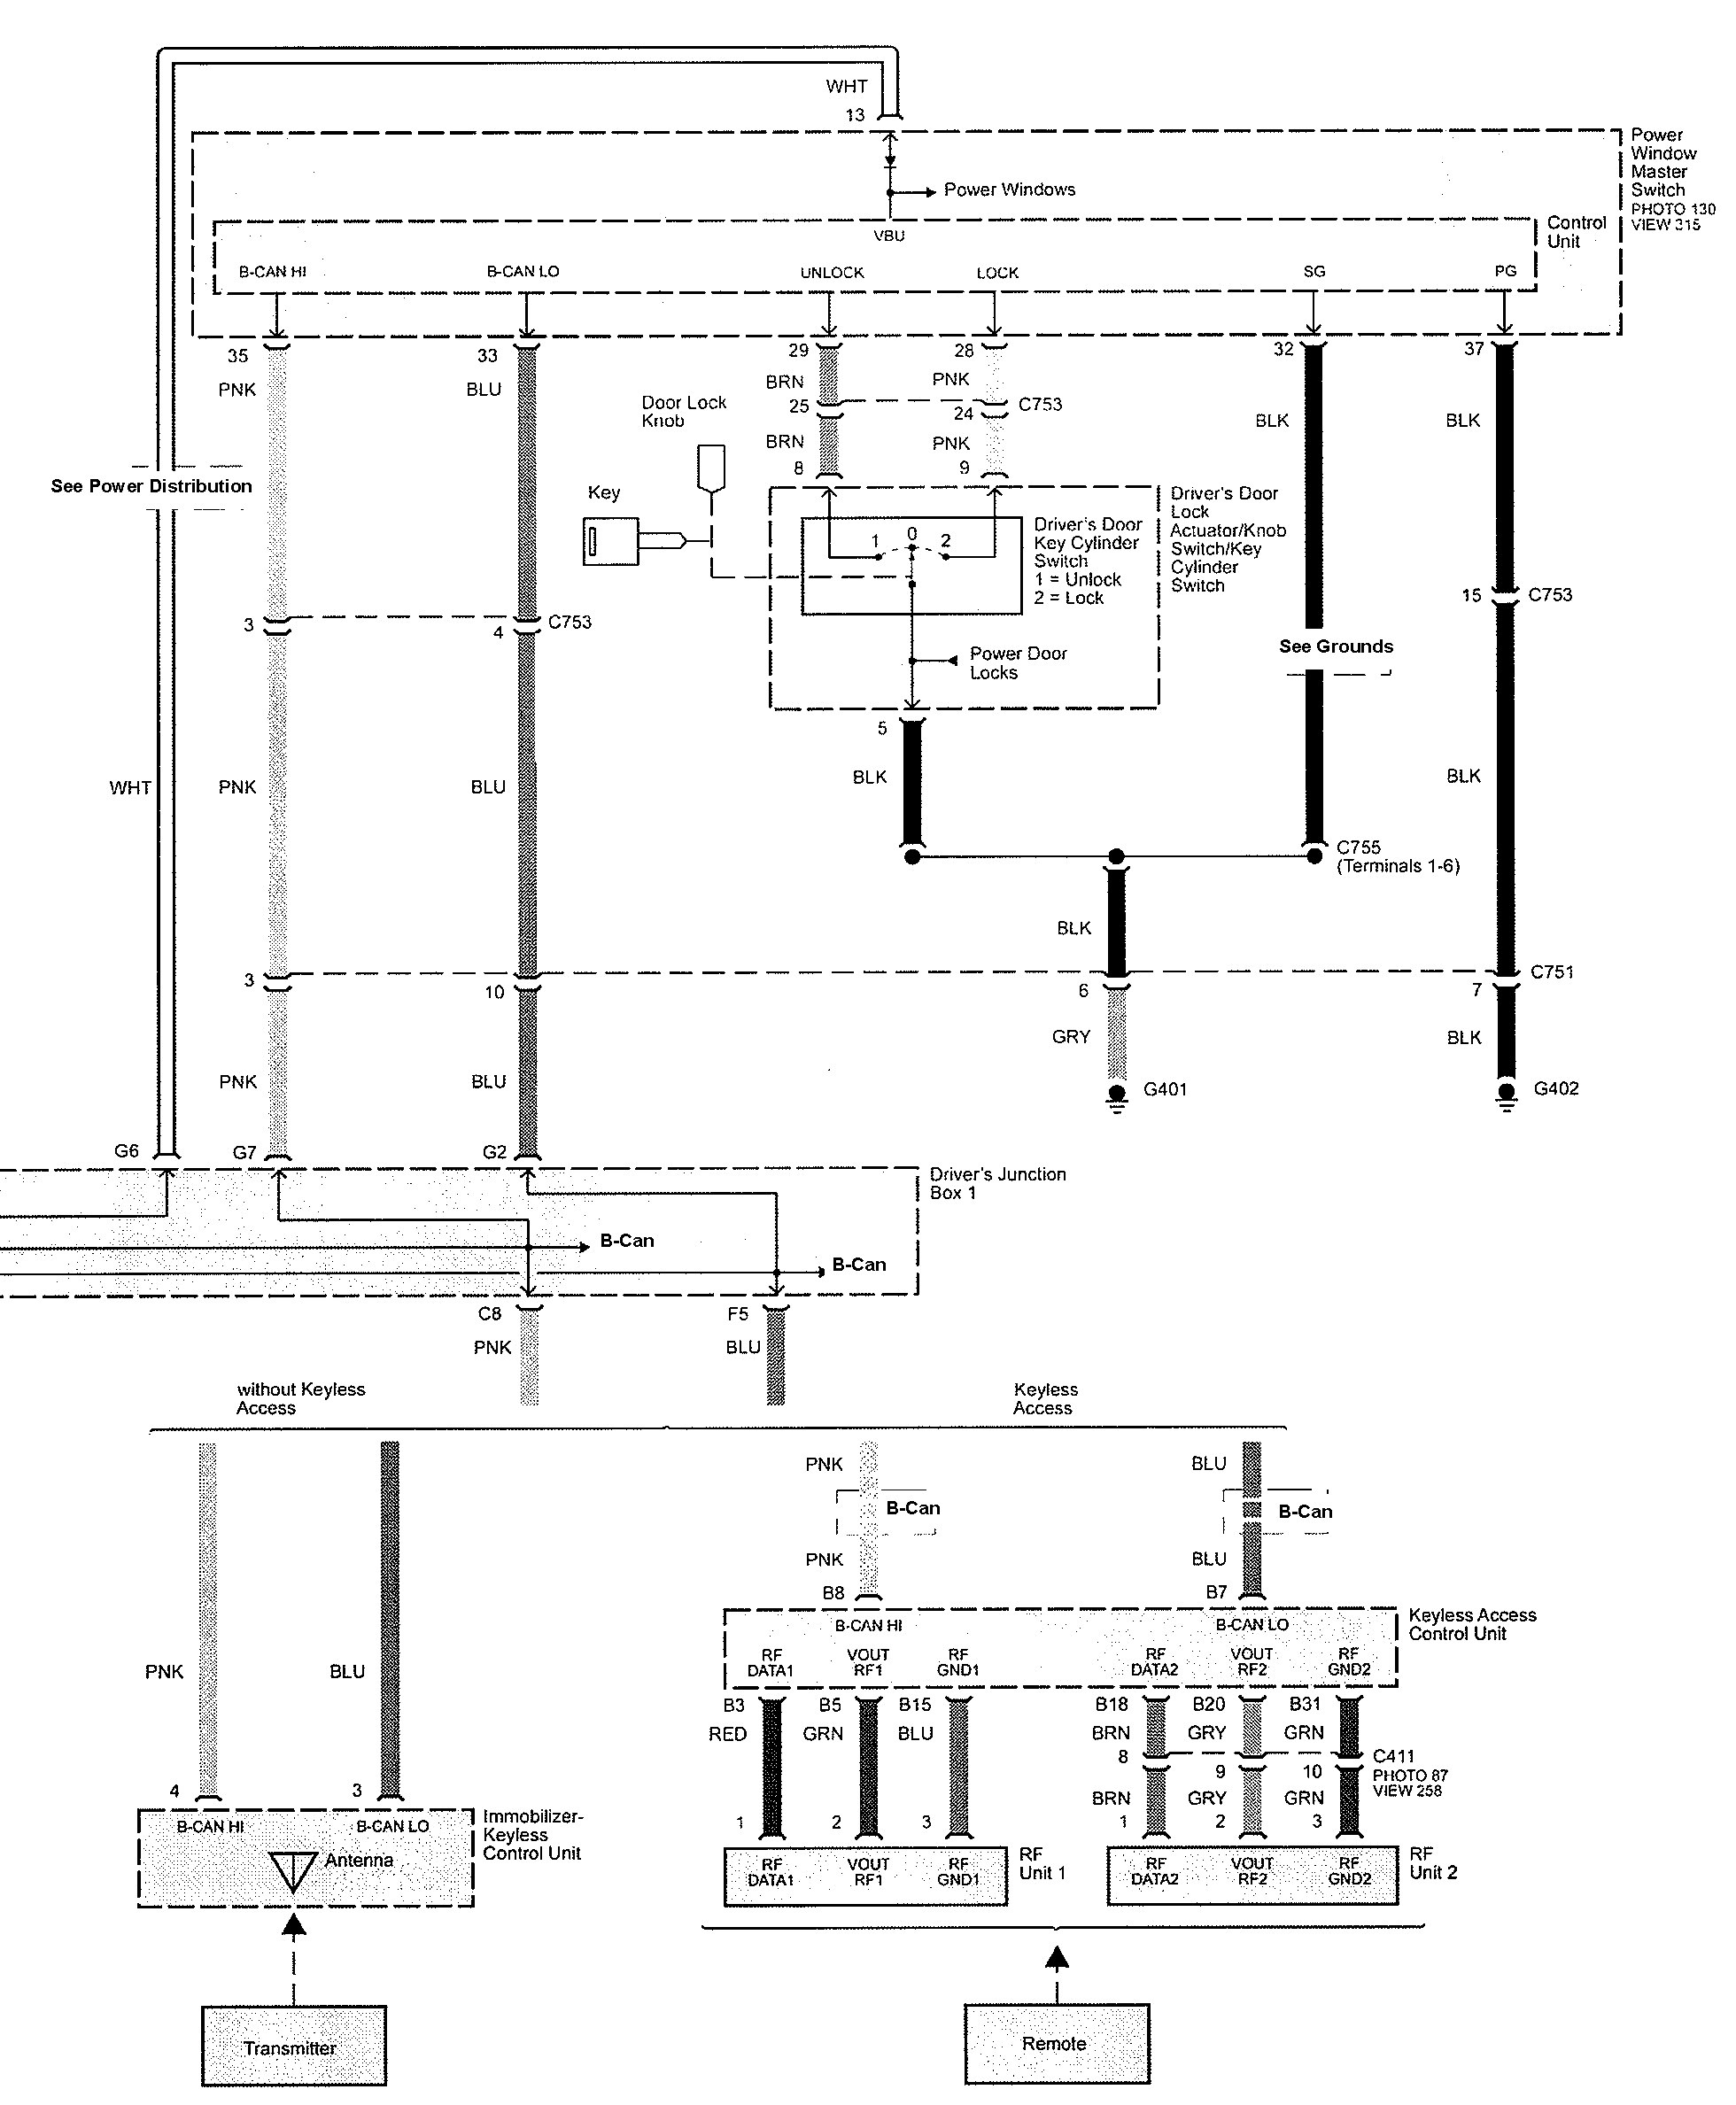 2010 Acura Tl Light Wire Diagram Smart Wiring Diagrams Images Gallery